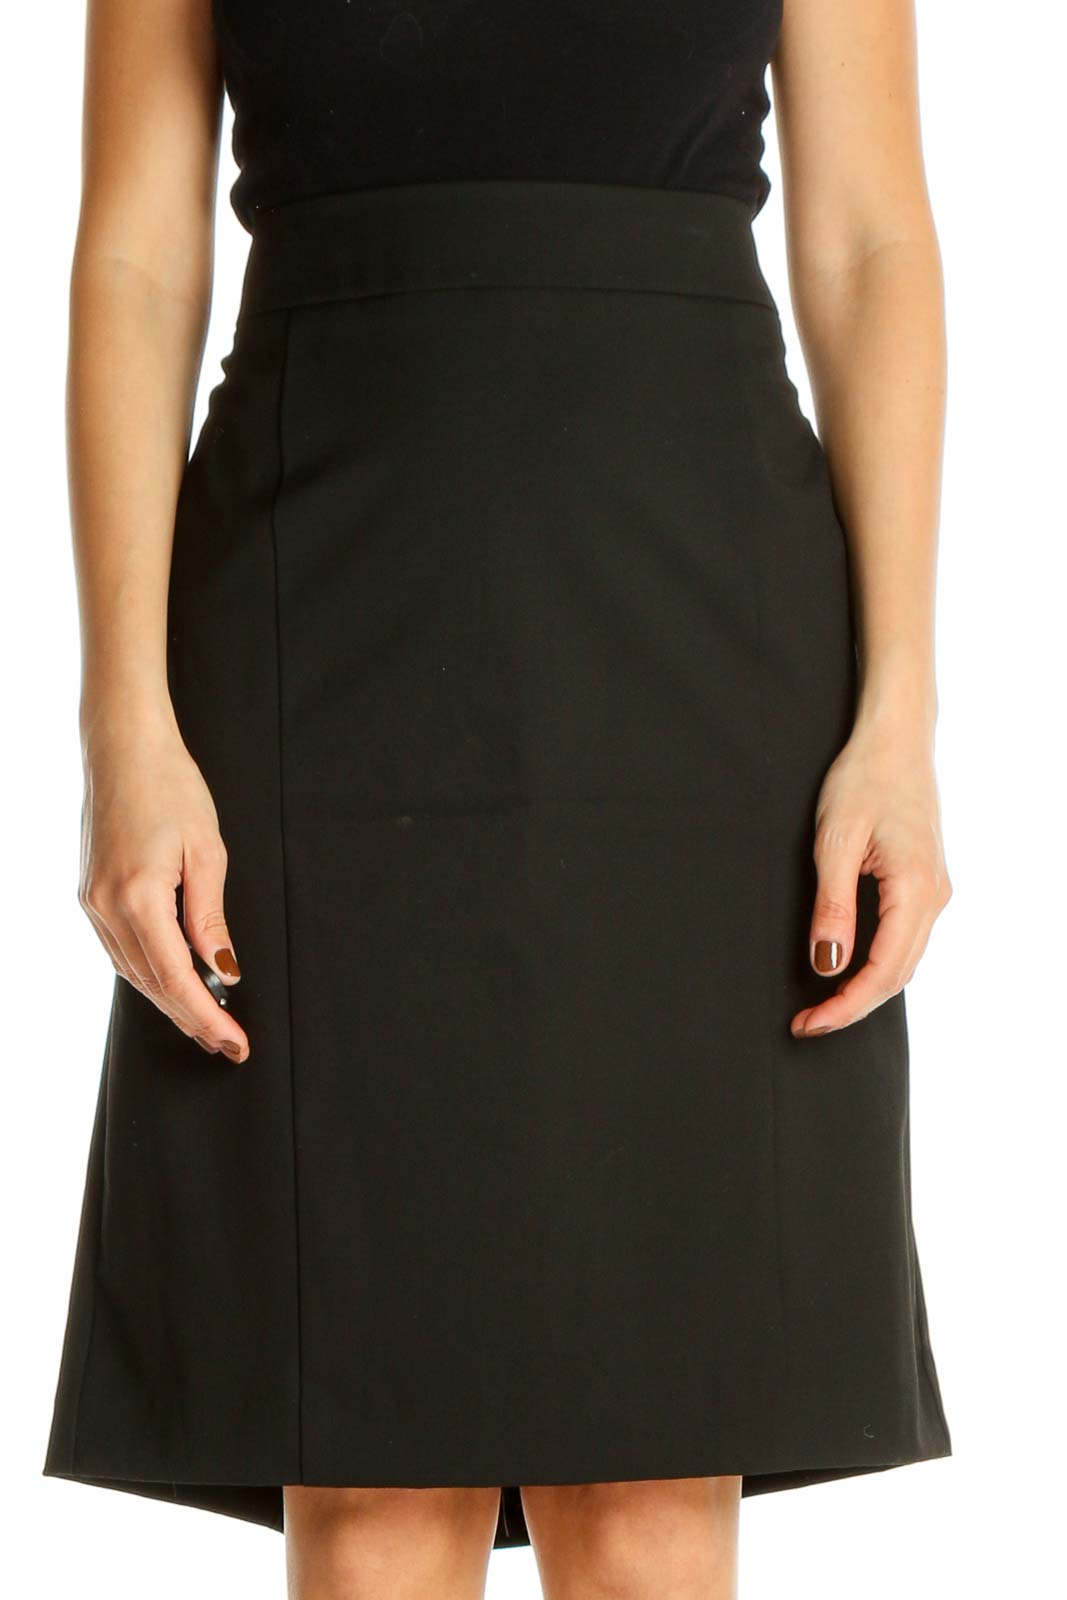 Black Solid Classic A-Line Skirt Front